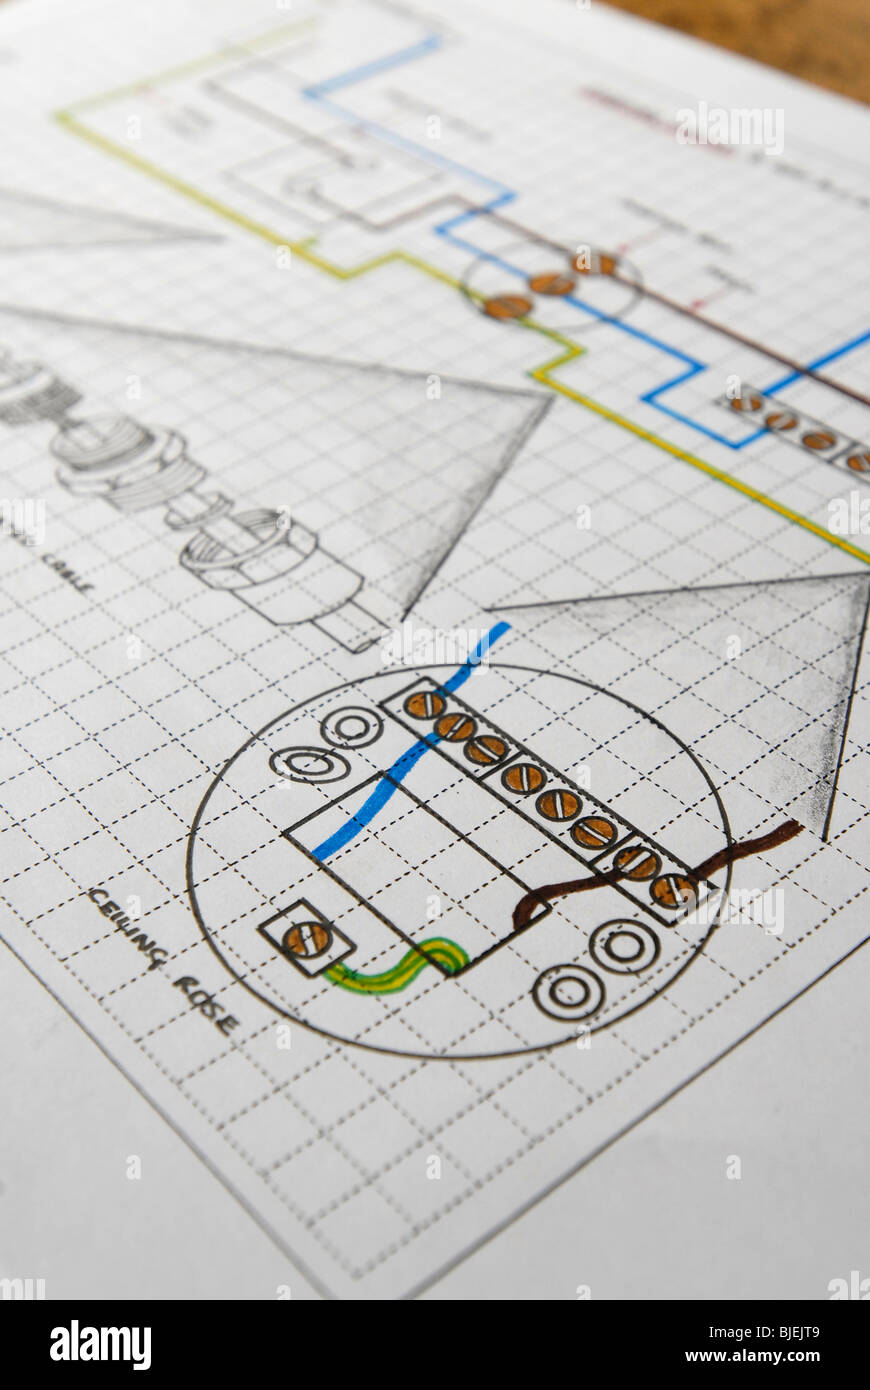 hight resolution of technical drawing of electrical ceiling rose wiring diagram